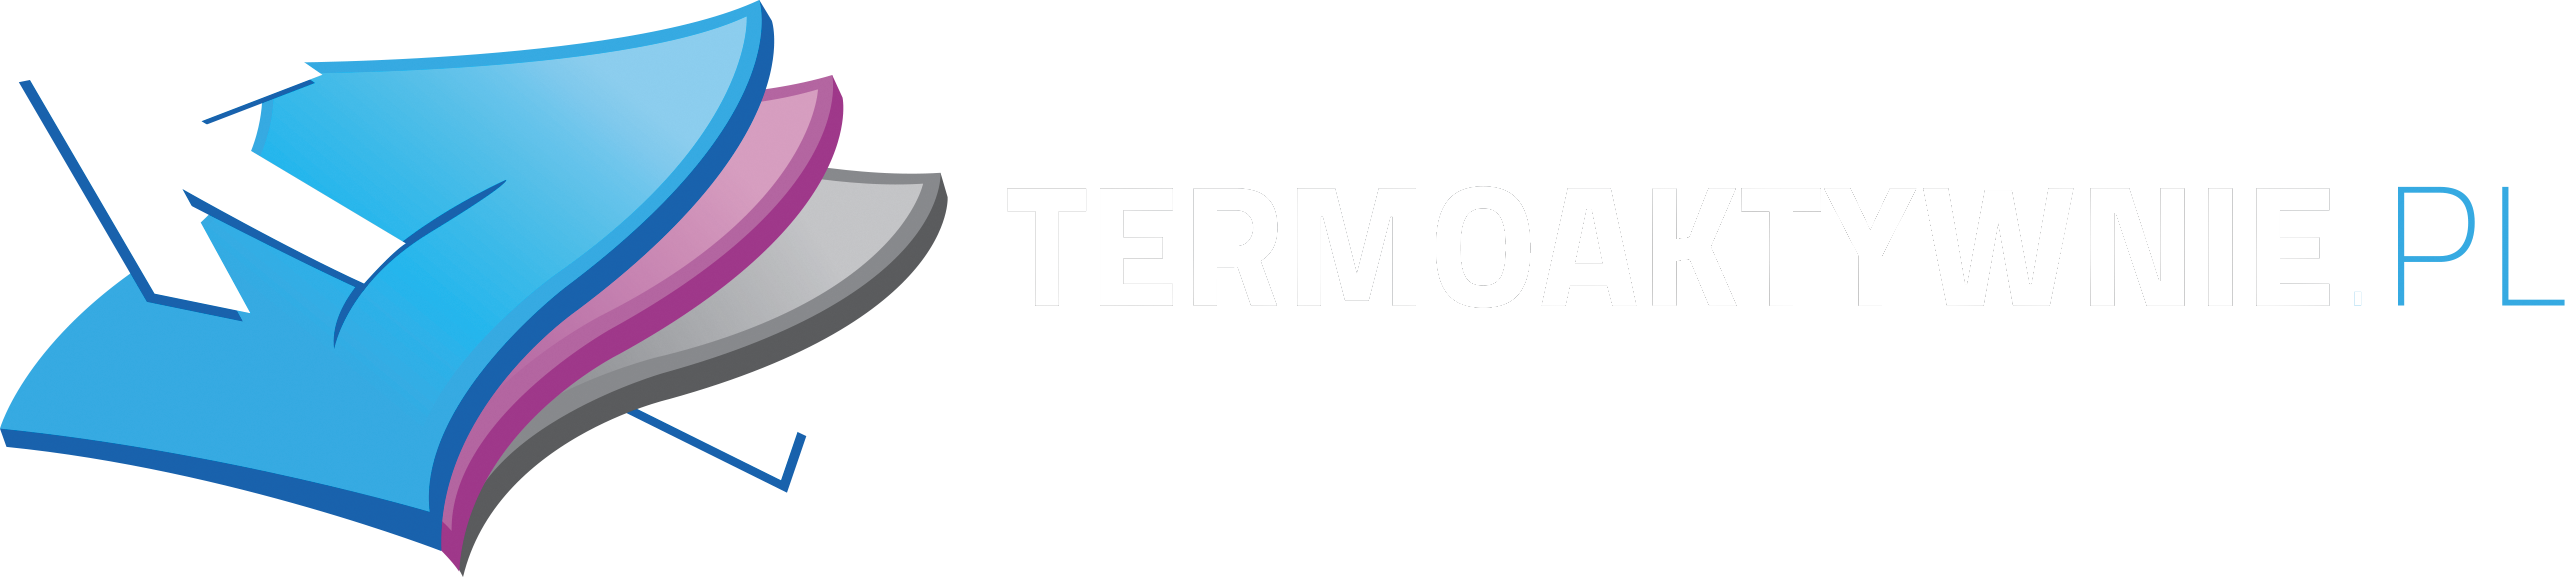 Termoaktywnie.pl Store with thermoactive clothing